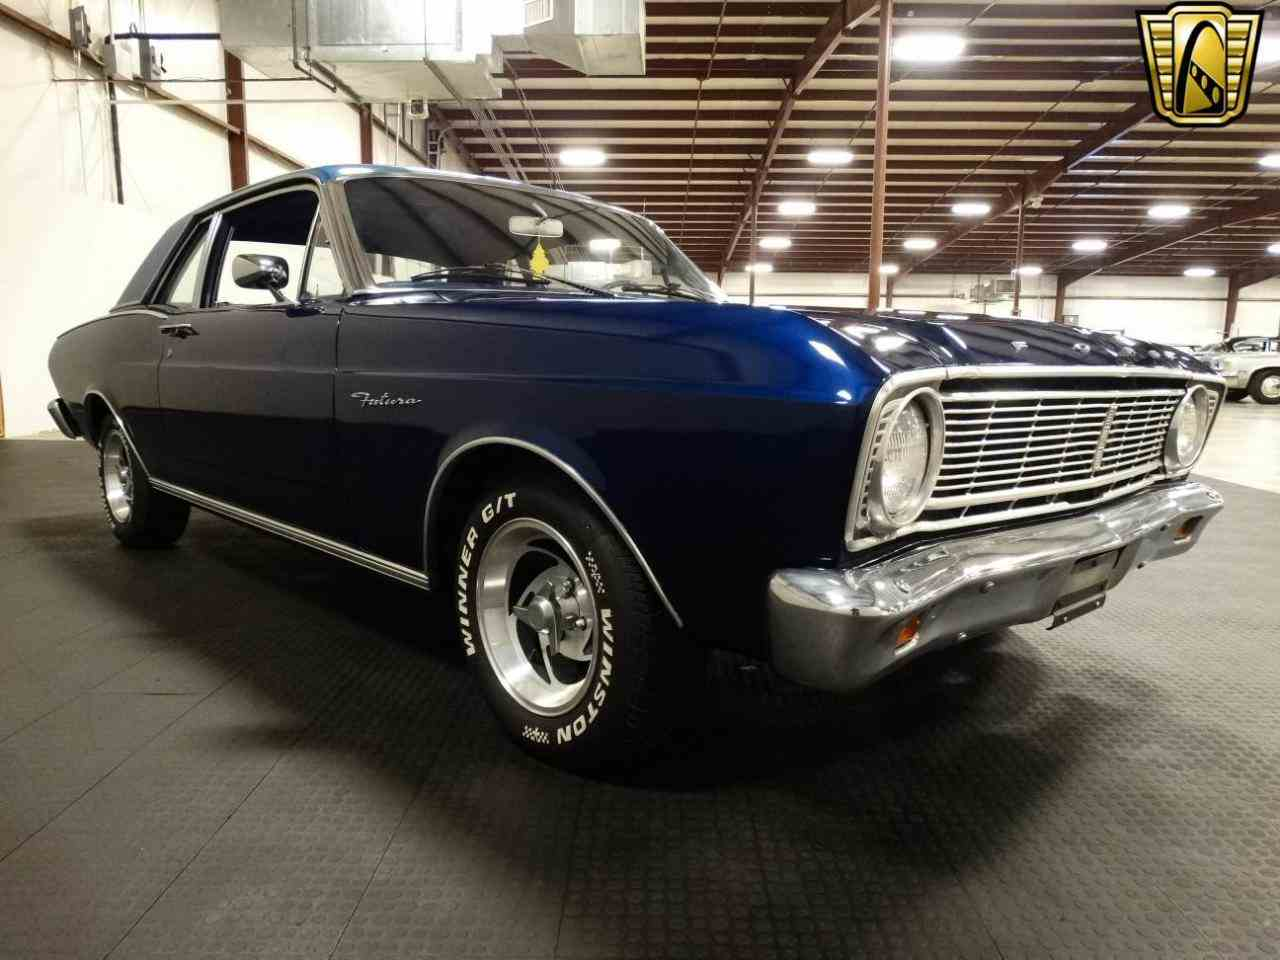 Used Cars Louisville Ky Under 5000 >> 1966 Ford Falcon for Sale | ClassicCars.com | CC-959249